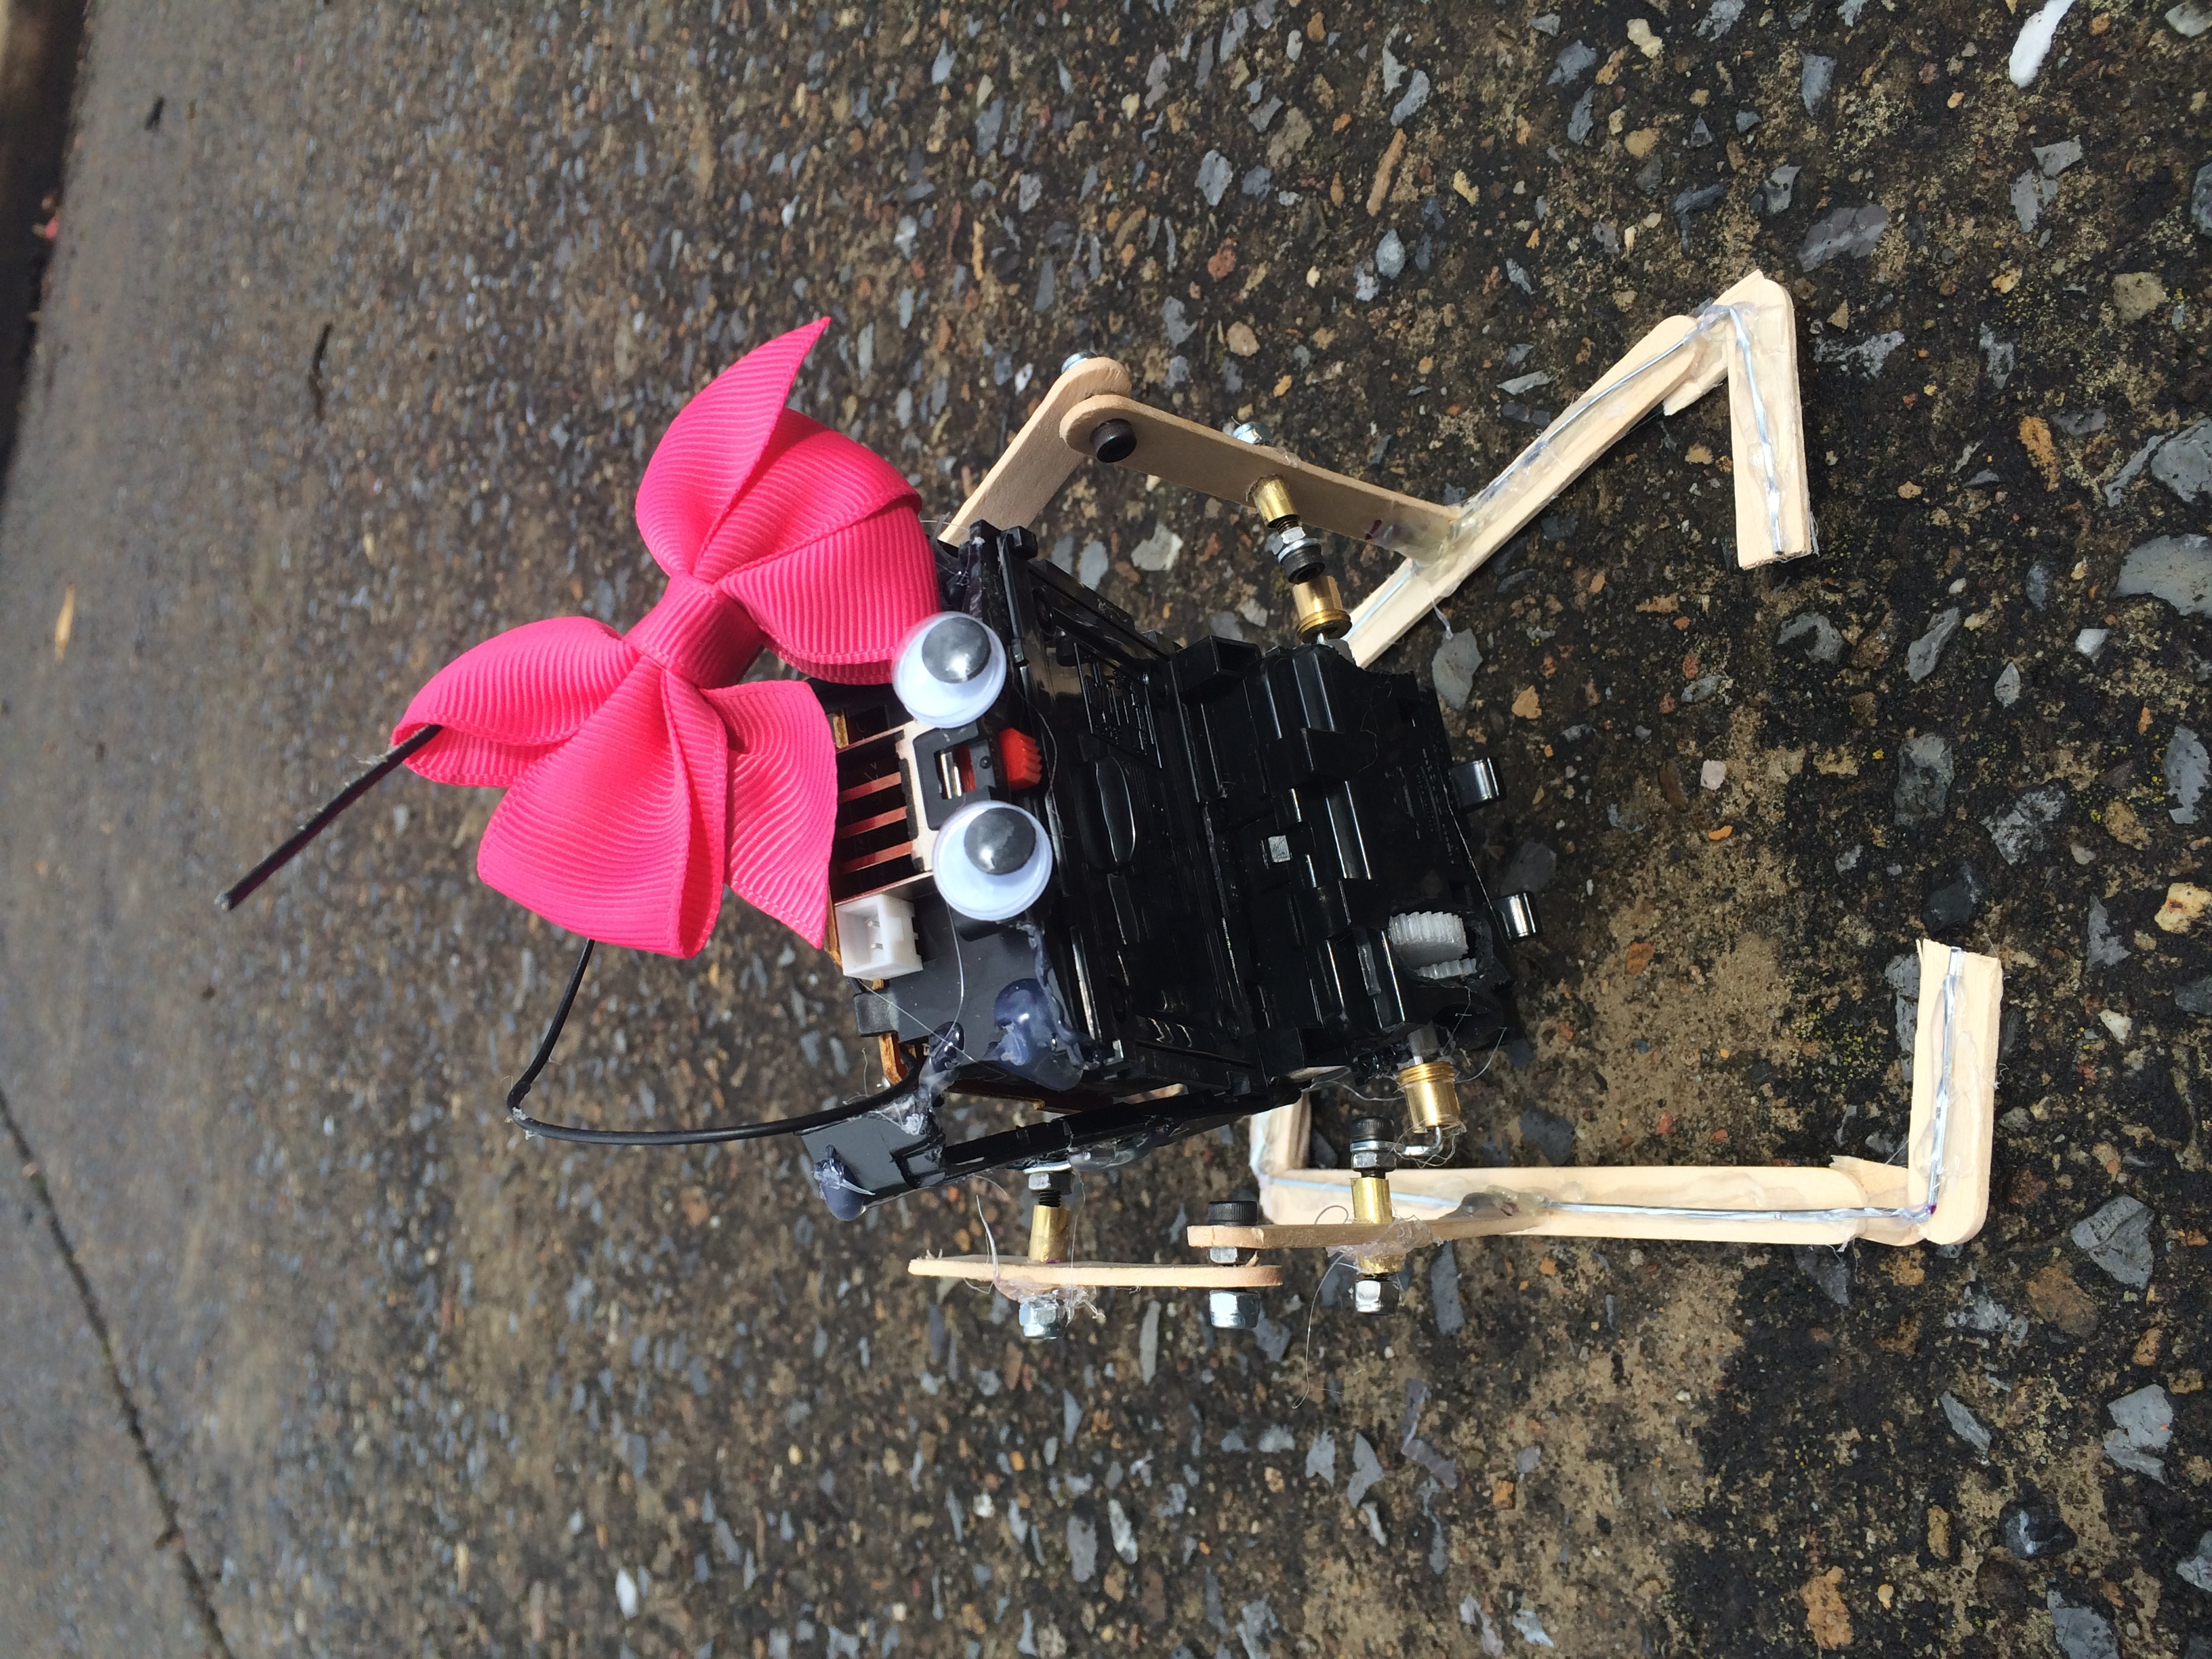 The finished robot with Popsicle stick legs. This was especially pleasing since the printed gear work rather well. Unfortunately, The galvanized wire and Popsicle sticks caused the robot to be tediously hobbling back and forth.